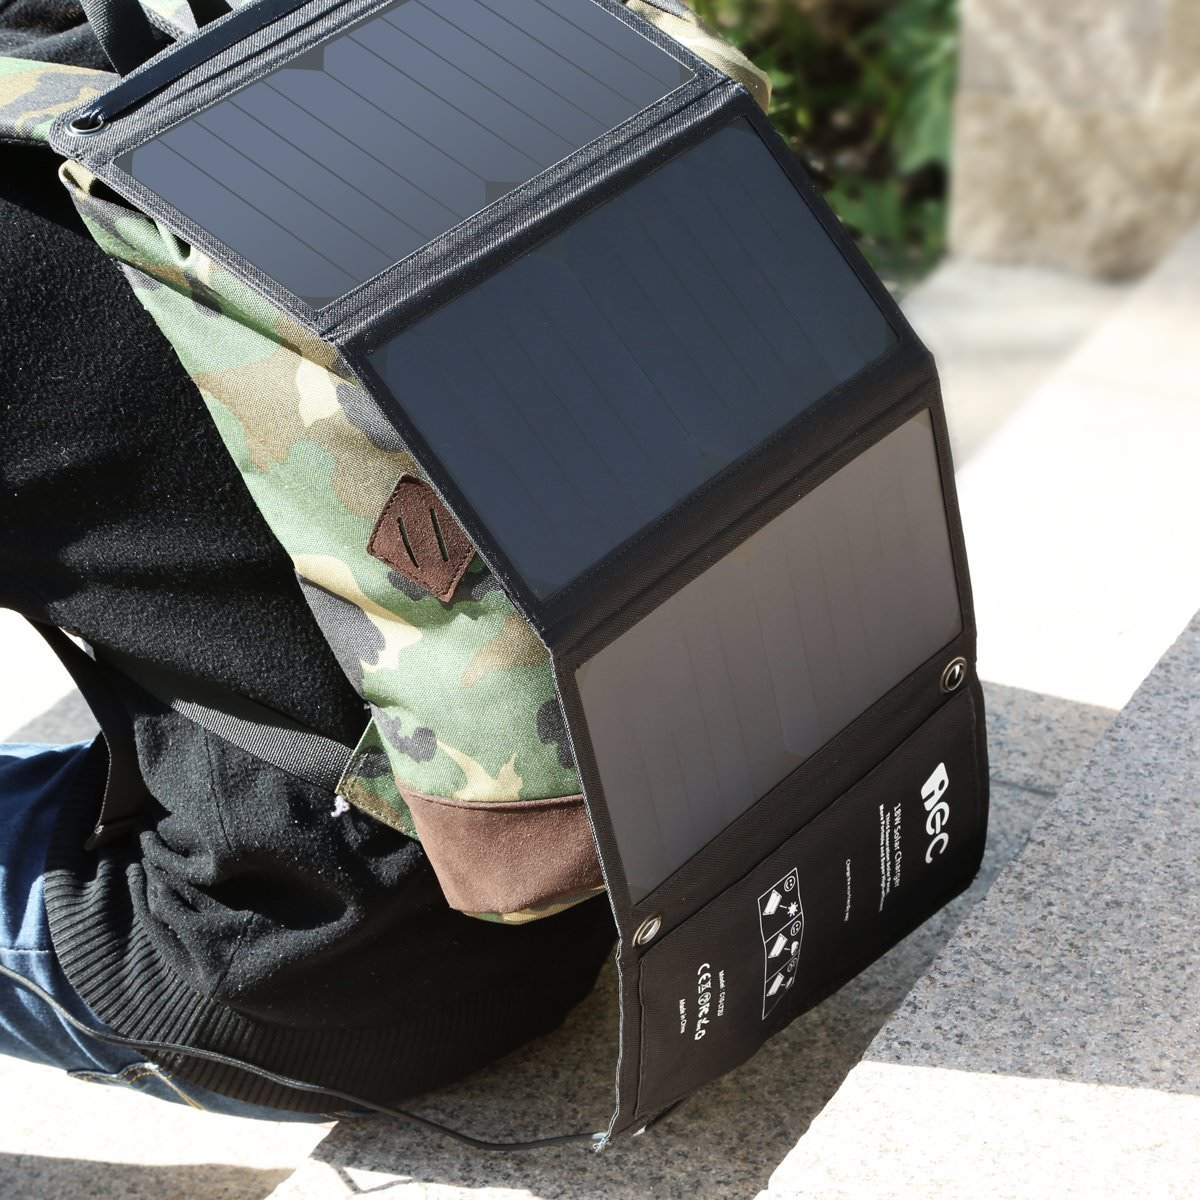 031_20160618_iec-solar-charger